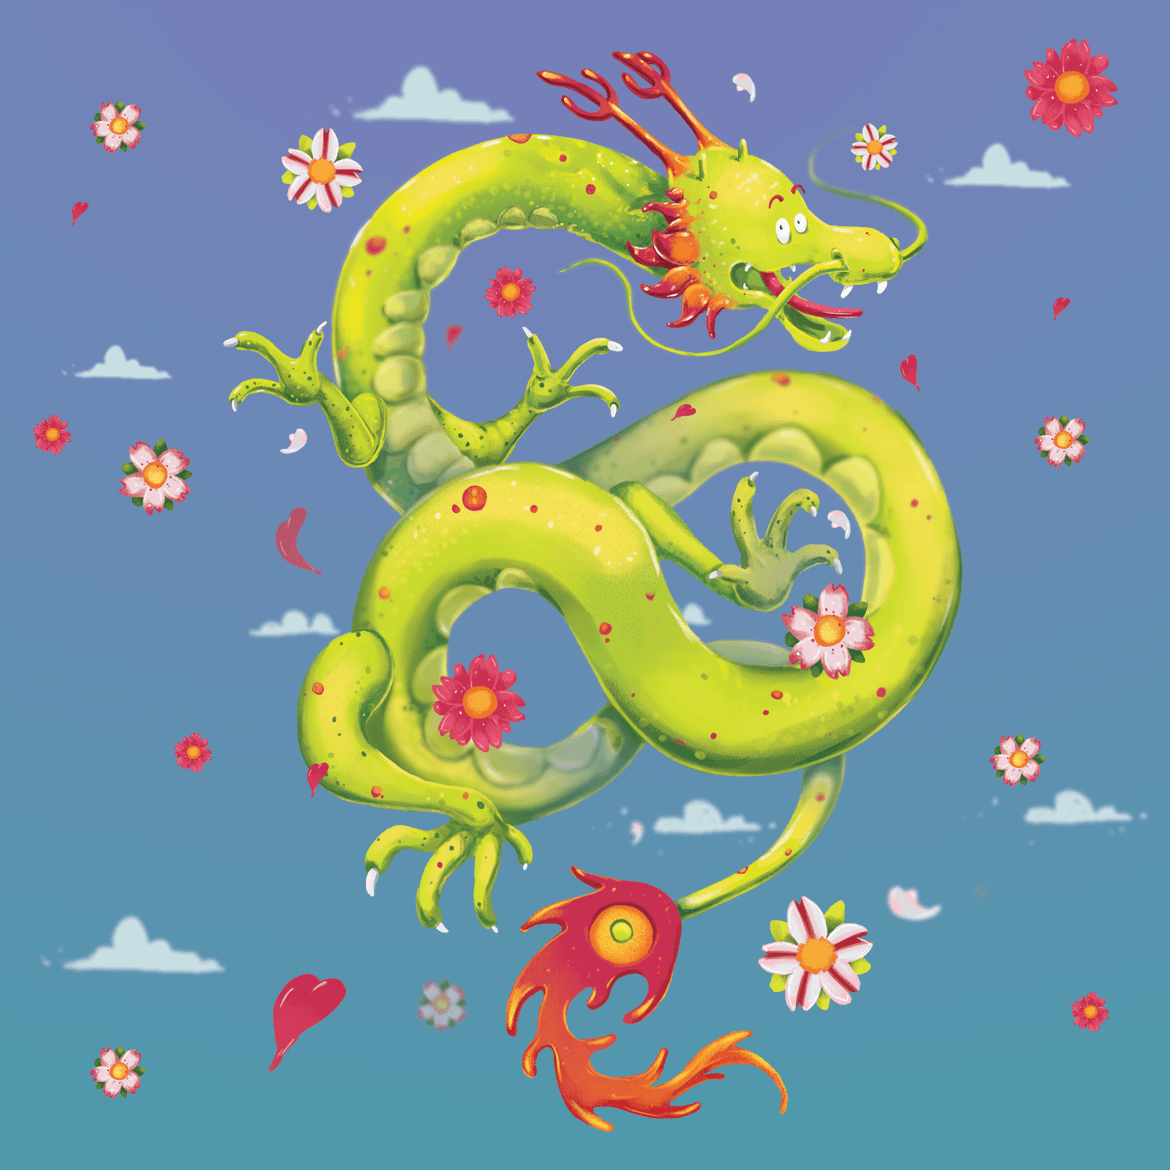 Rowena Aitken Illustration | Fantasy | Jazz Hands Dragon